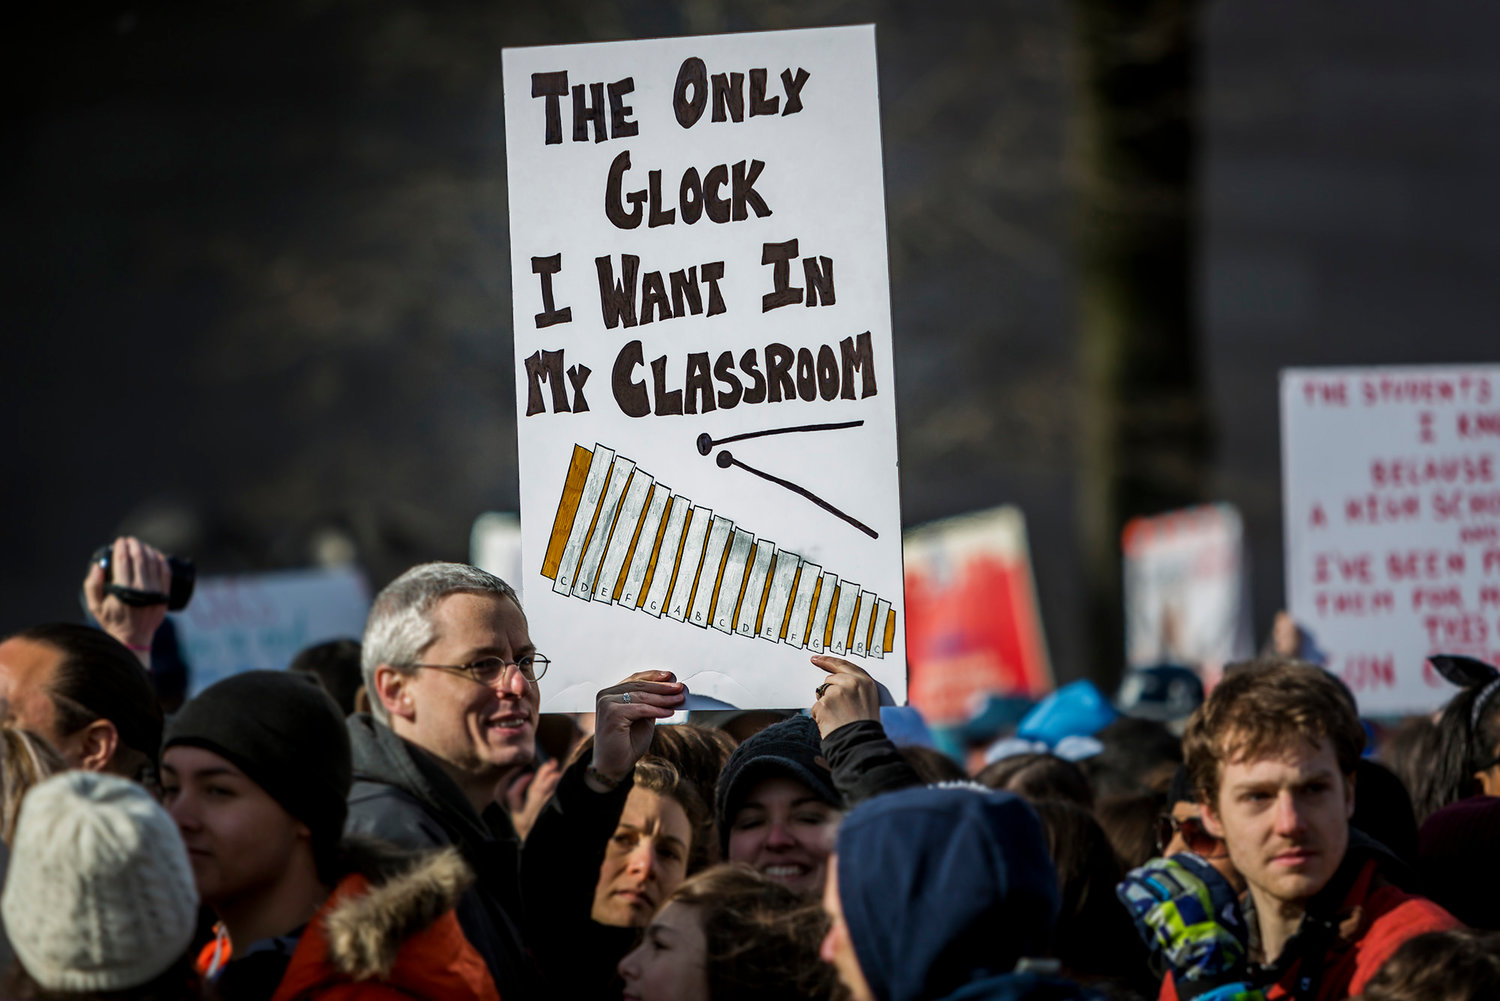 On March 24, 2018, students from Marjory Stoneman Douglas High School in Florida, the scene of a mass shooting Feb. 14, were joined by more than 800,000 people as they march in a nationwide protest demanding sensible gun control laws. The Florida Senate passed a bill that allows classroom teachers to be armed.